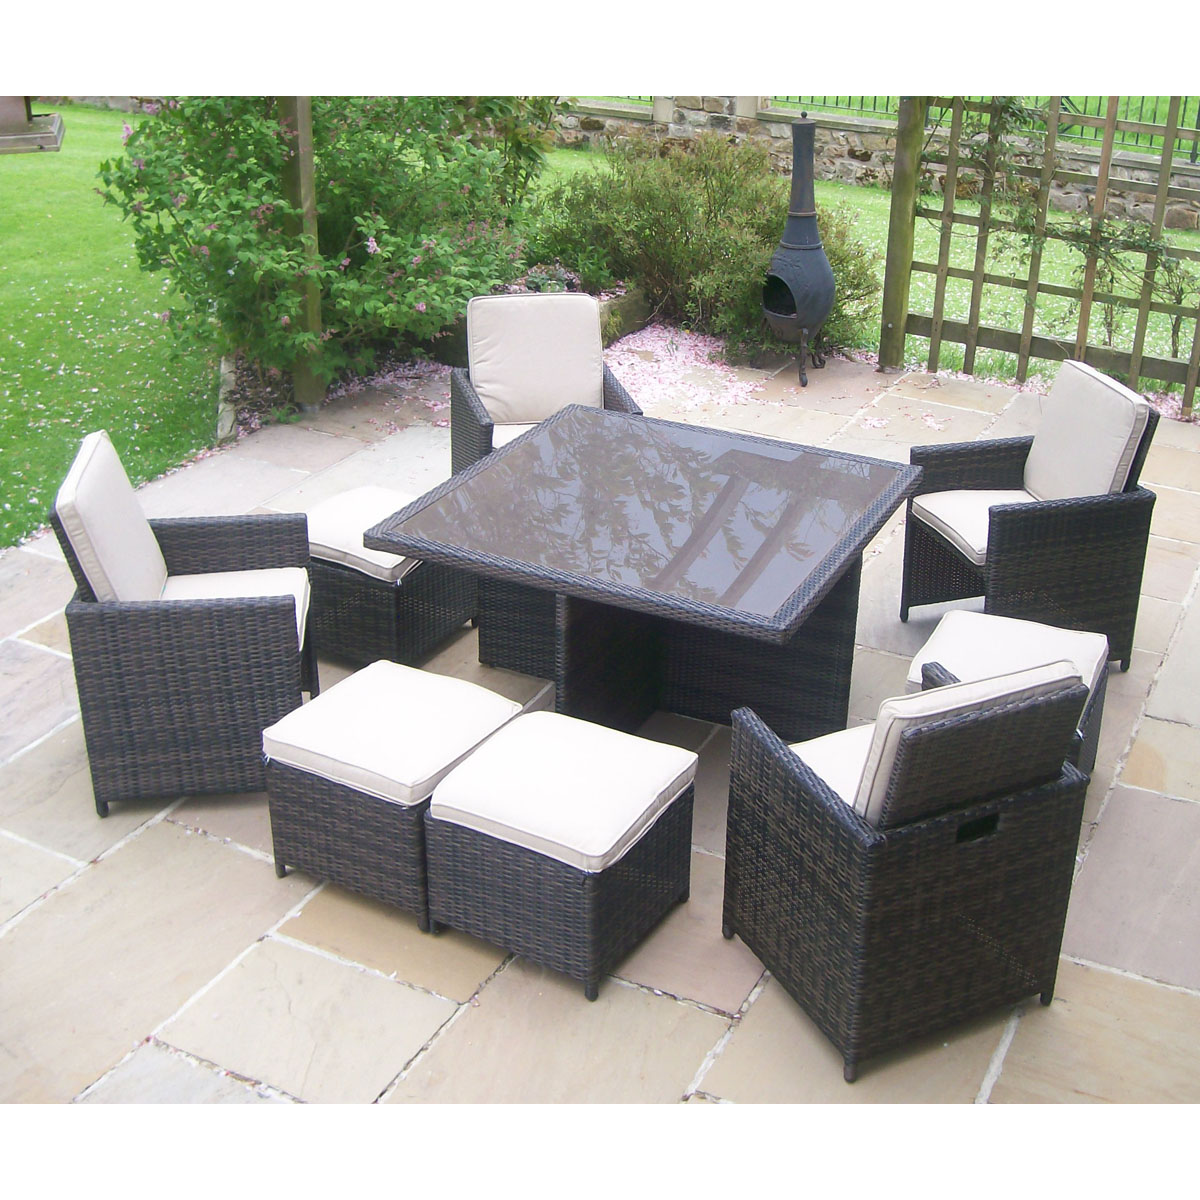 rattan wicker garden furniture table 4 chair patio set enlarged